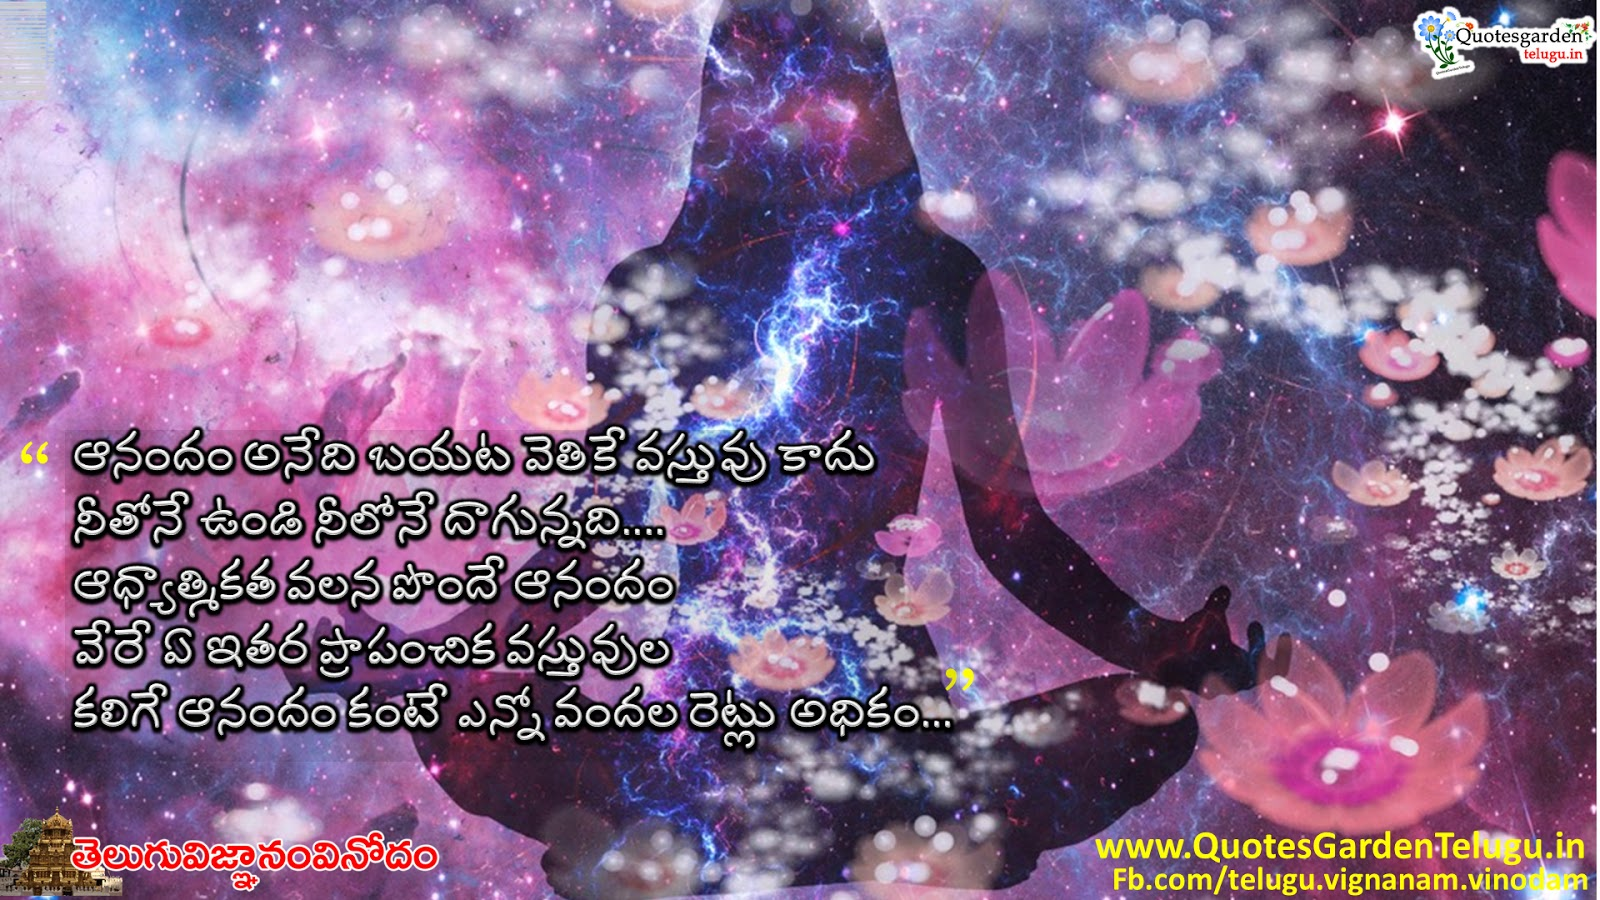 Latest good morning quotations in telugu messages for friends